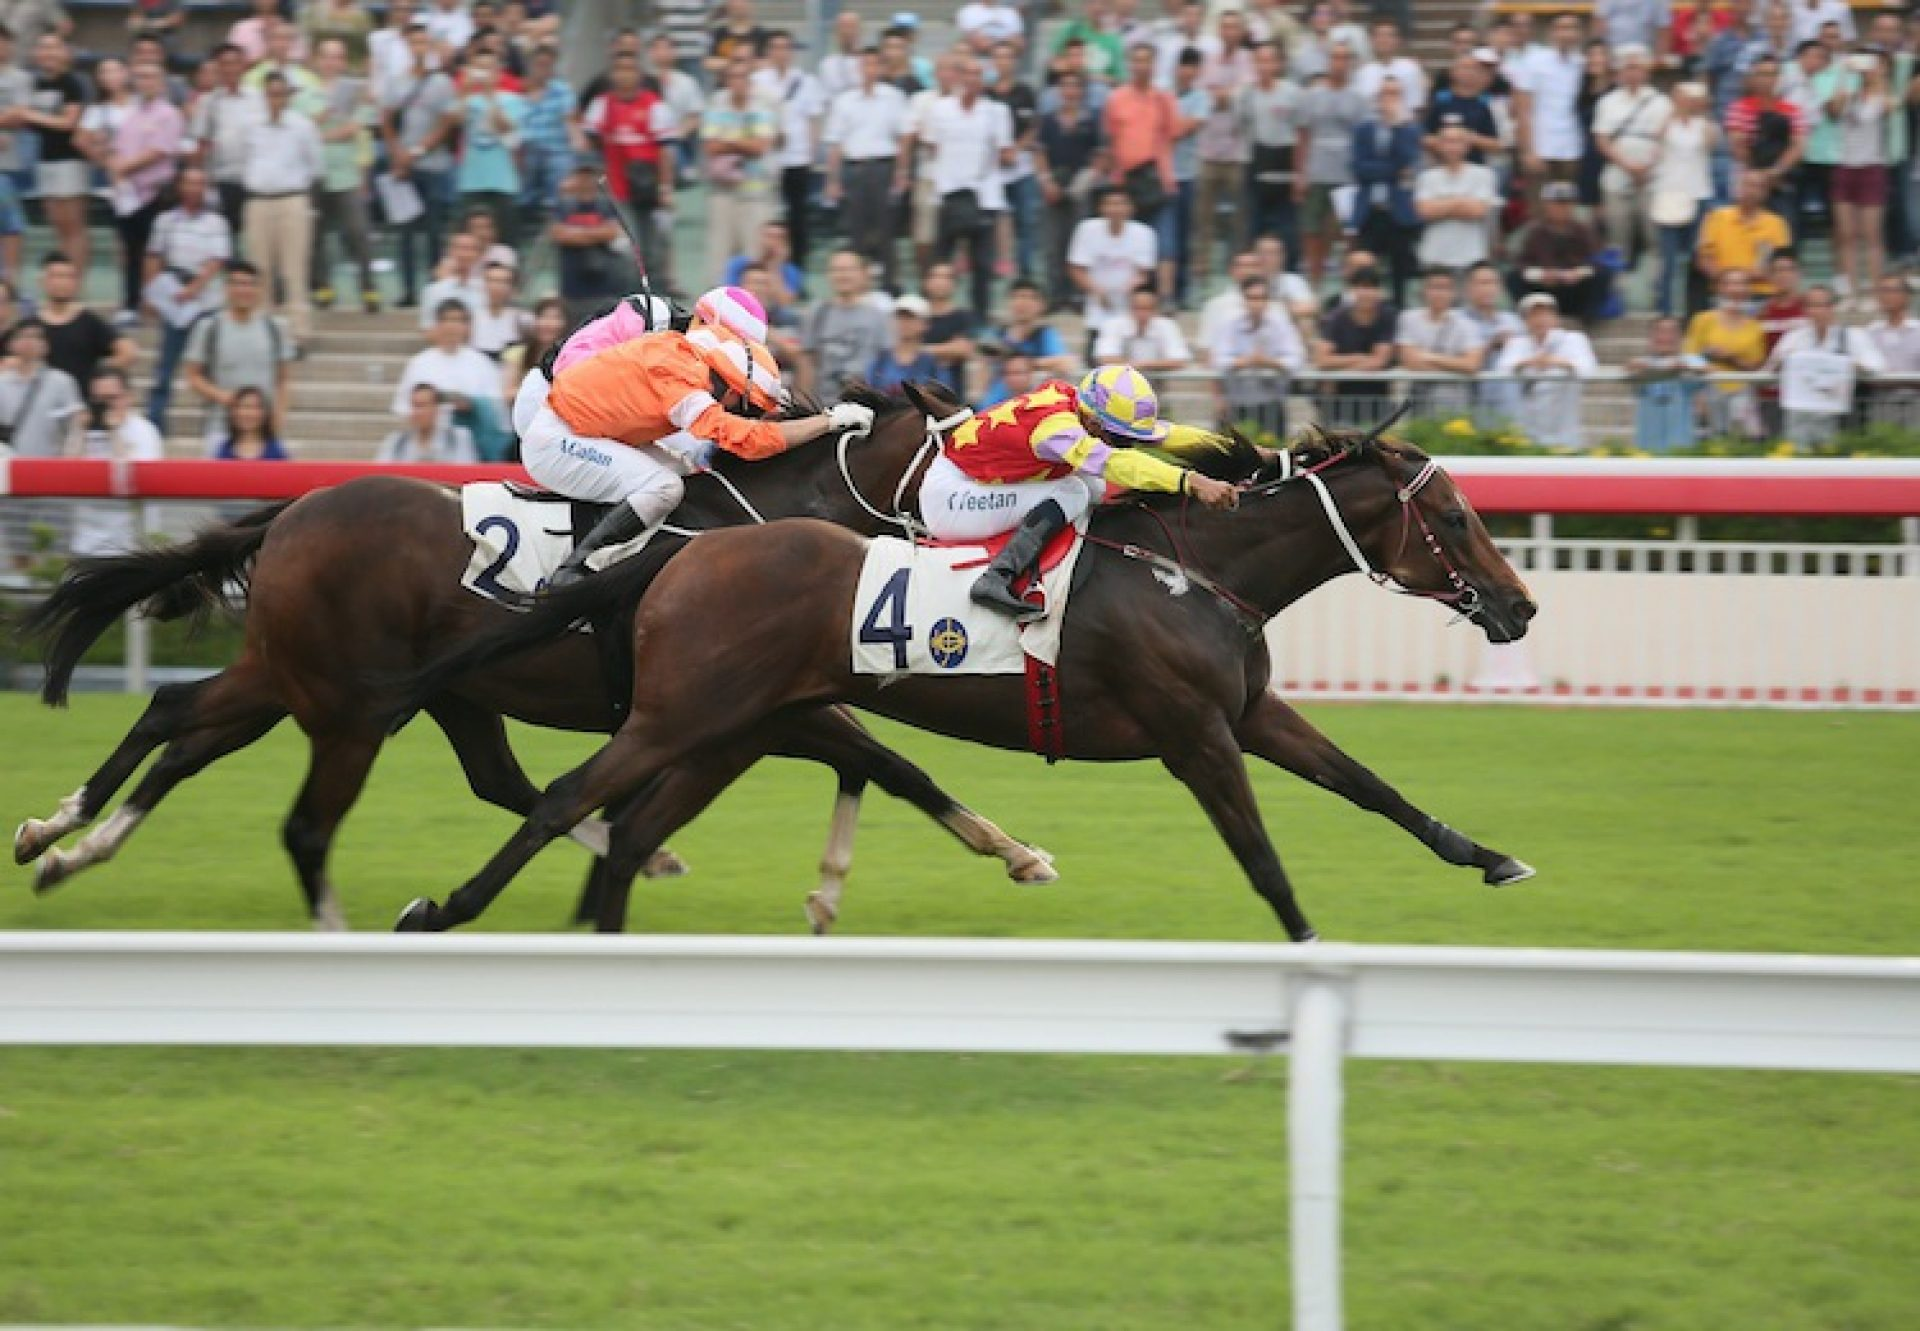 Designs On Rome (Holy Roman Emperor) winning the G2 Sha Tin Trophy at Sha Tin